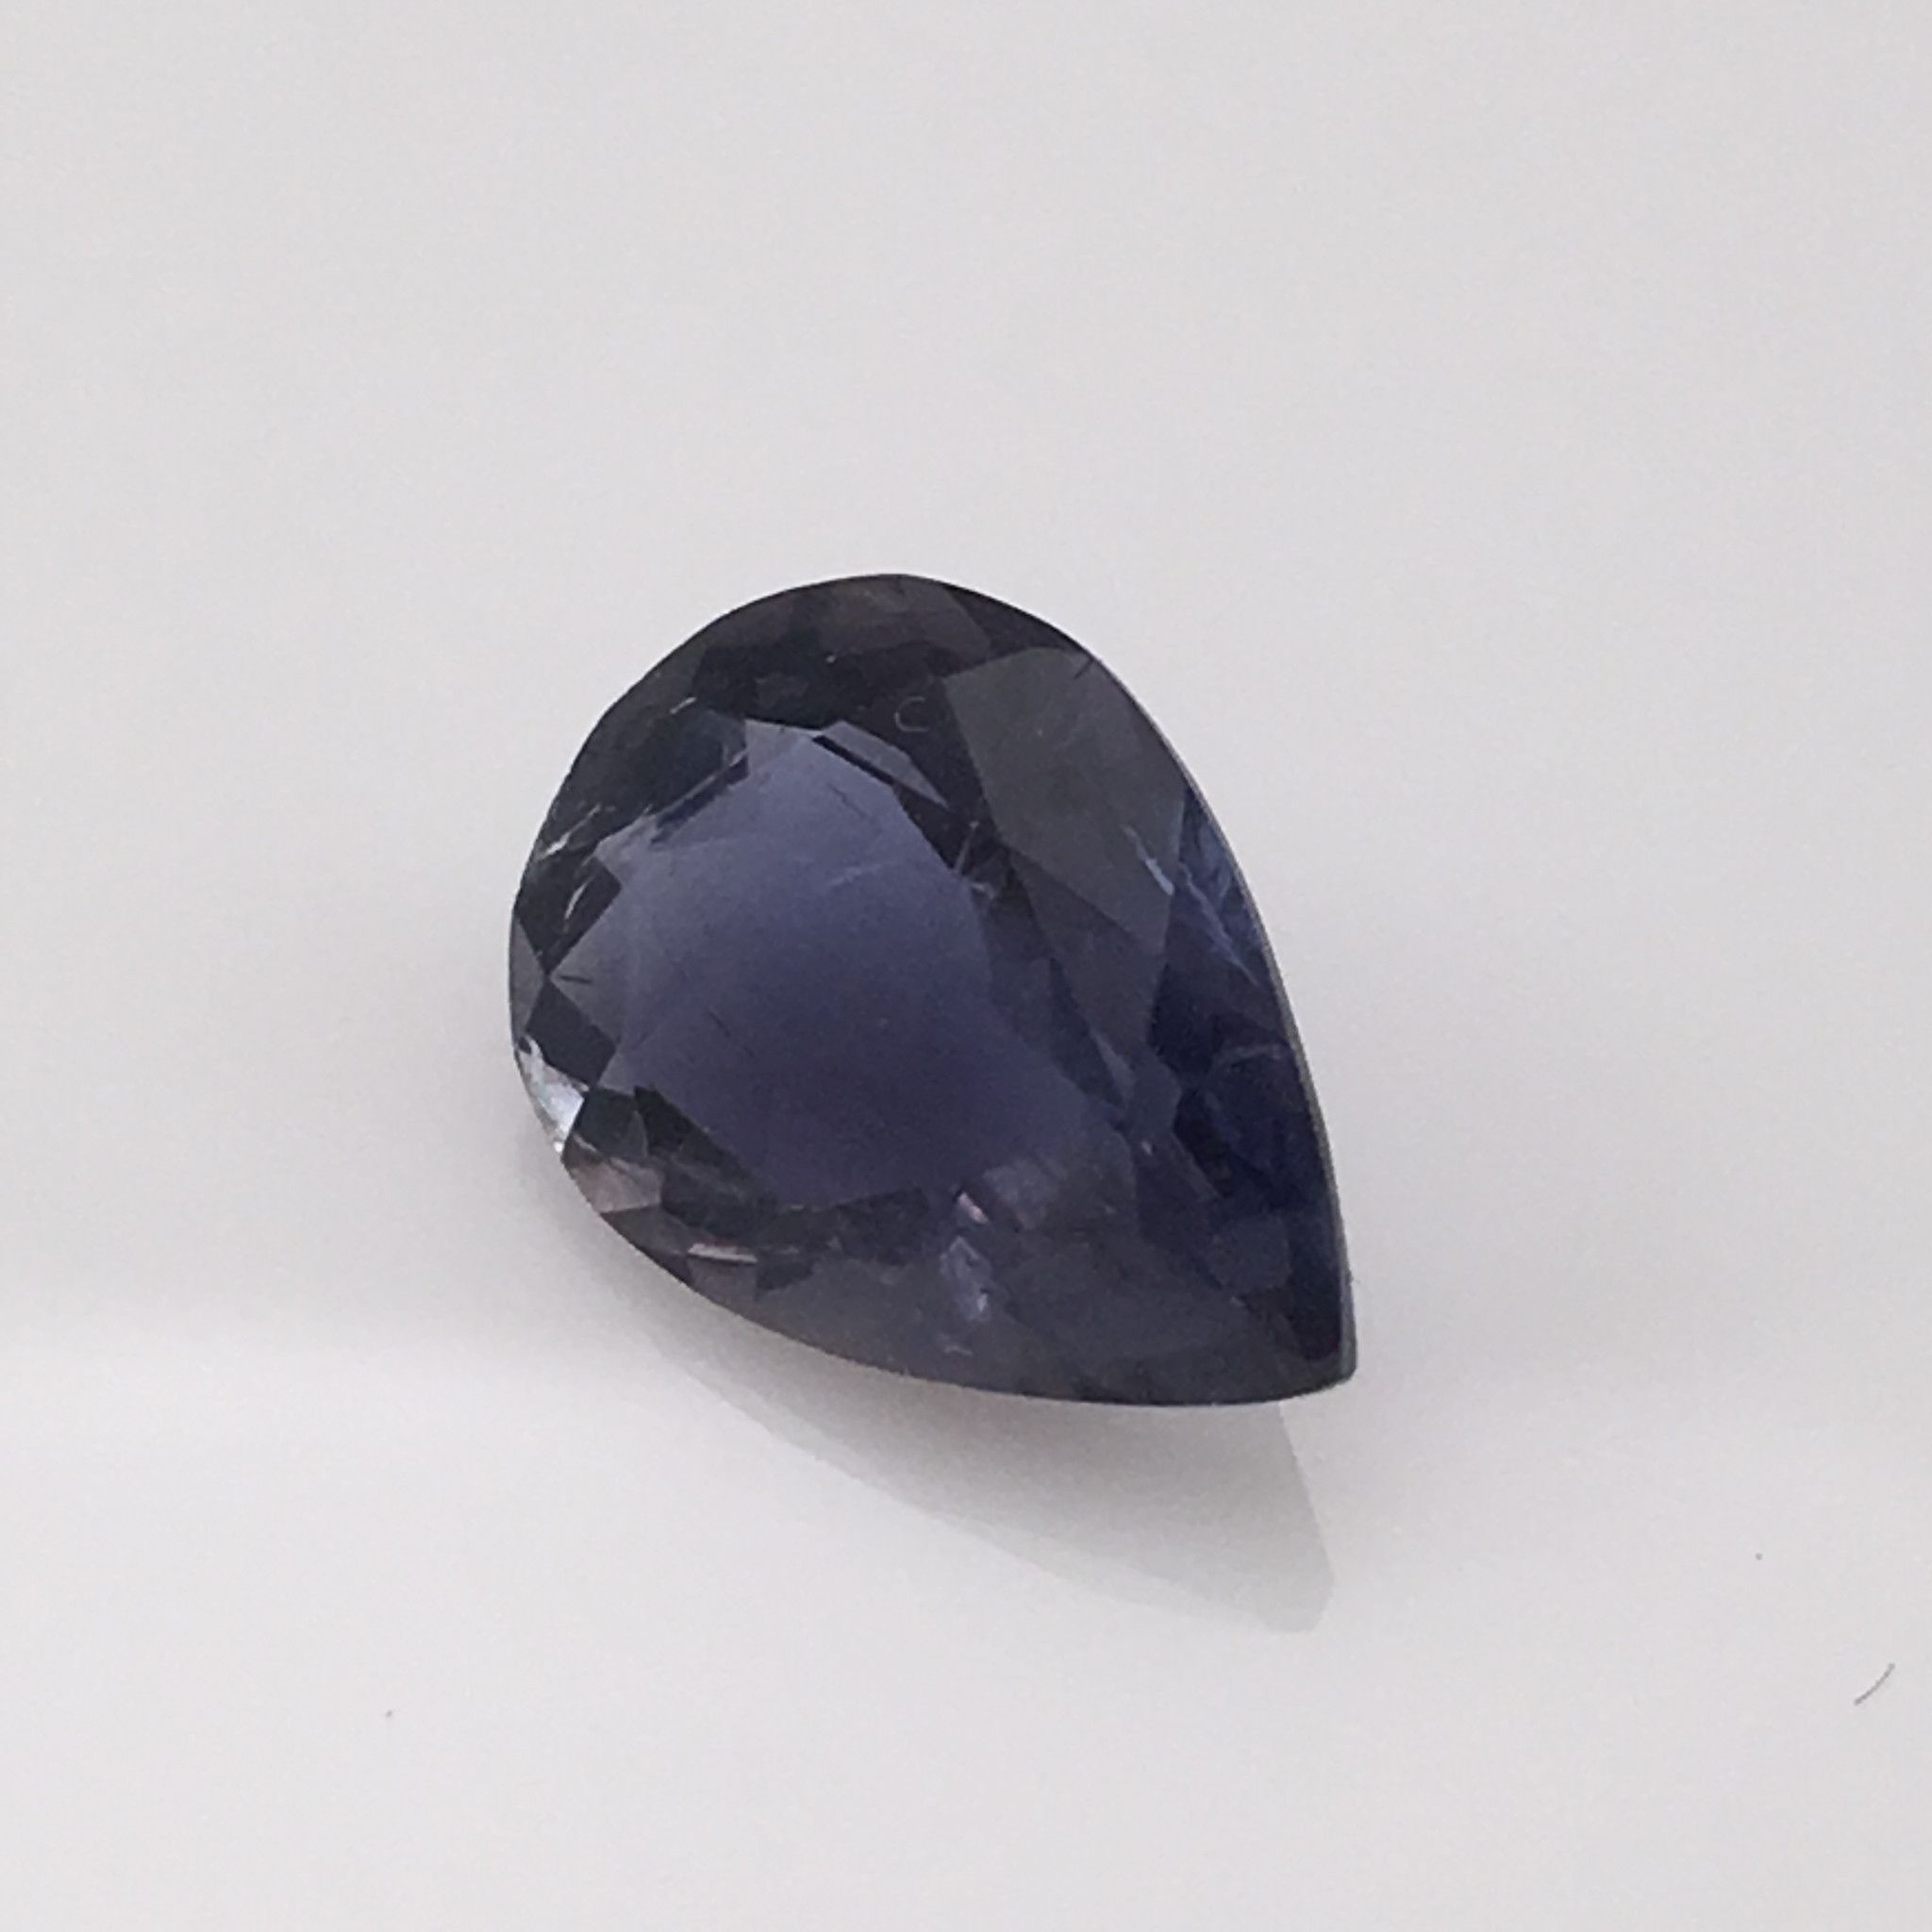 Pin on Gemstones and info